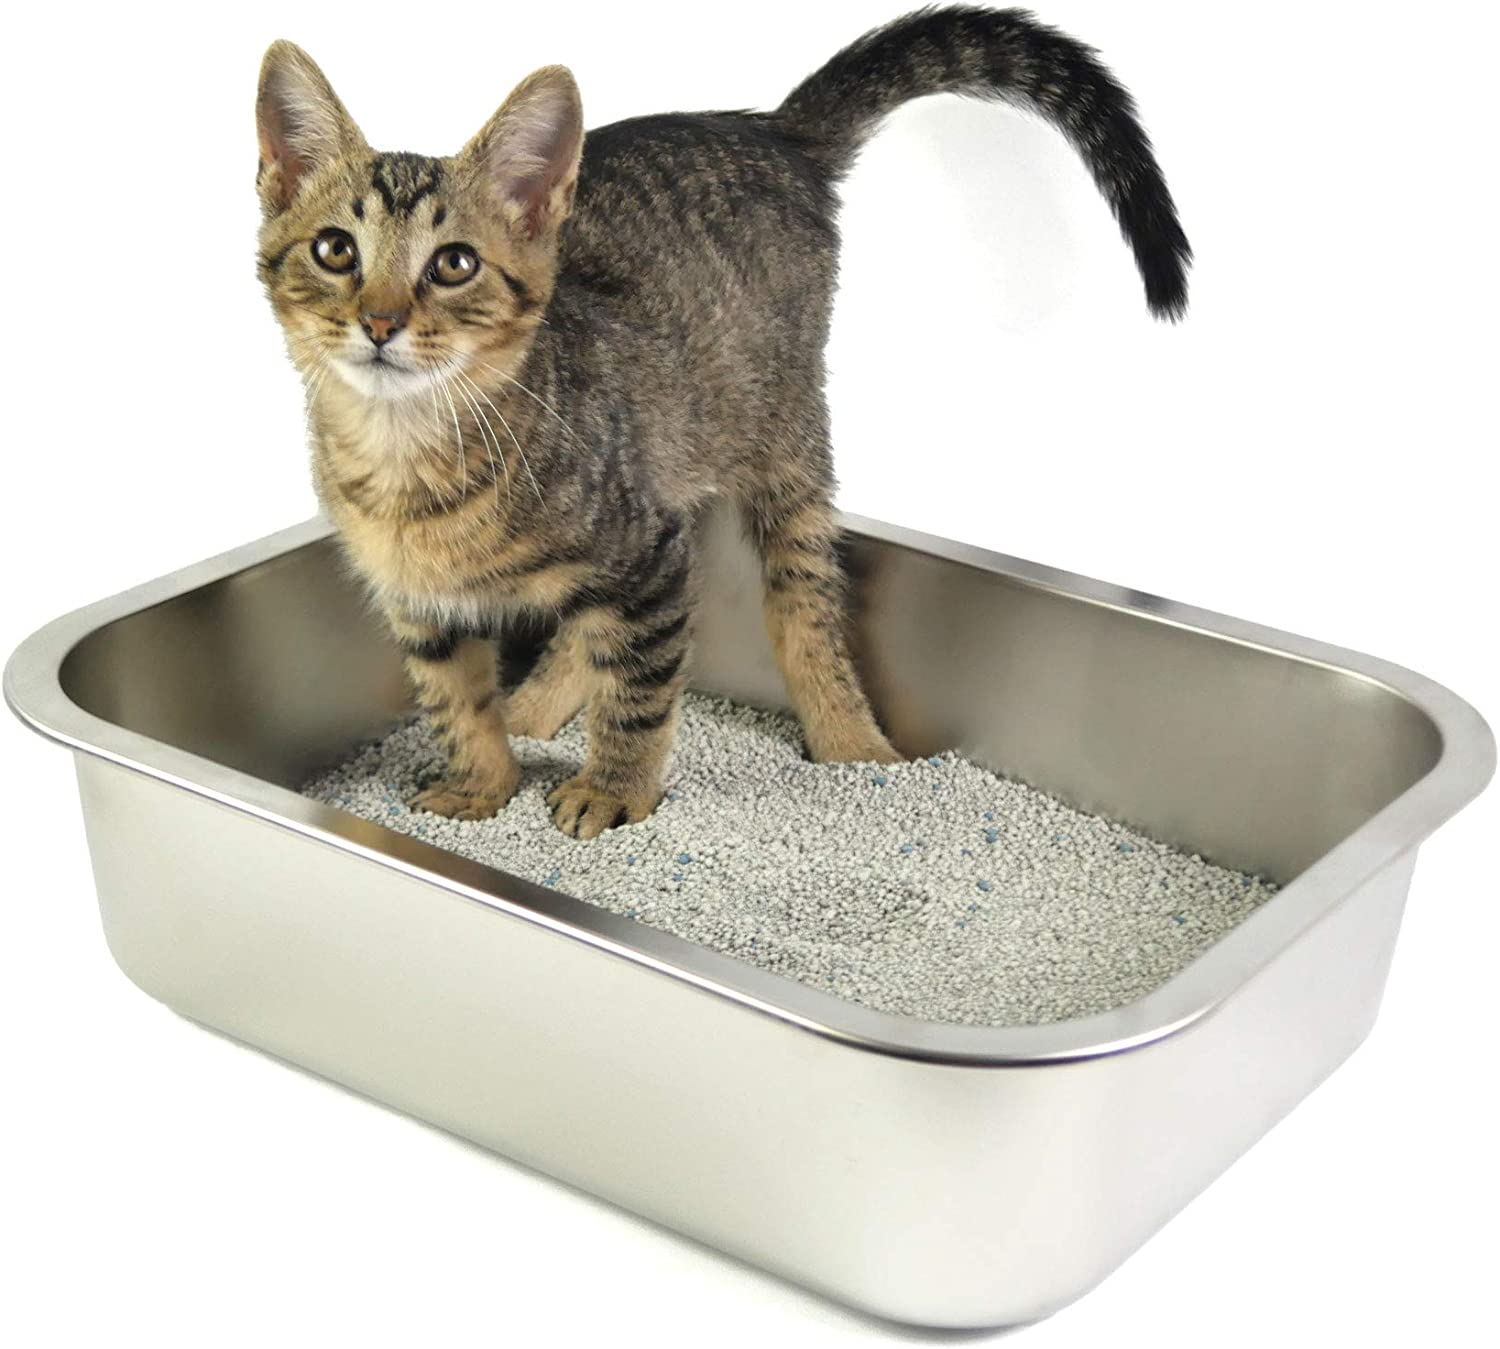 Genuine Free Shipping Small Litter Box for Cat Kitten Lit and At the price of surprise Rabbit Steel Stainless